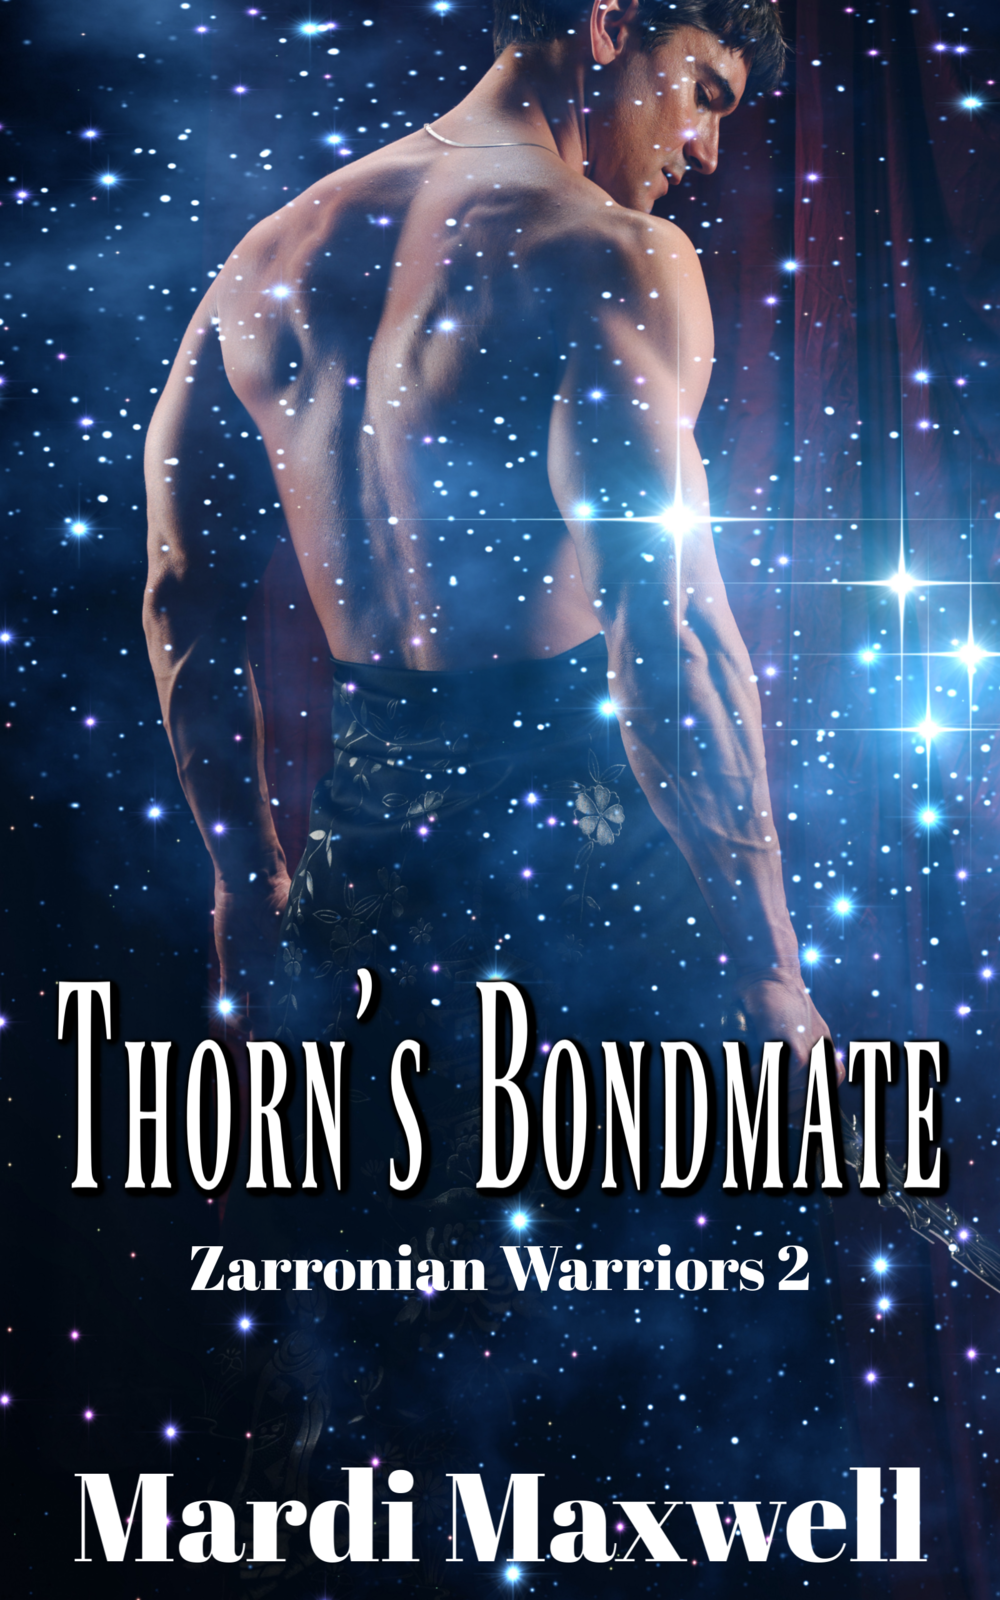 Thorn's Bondmate - Reporter Daria Zane is on the run from men who want her dead. Her only hope of survival depends on reaching Zarronia, but that means risking her life by stowing away on a Zarronian starship and hoping she isn't caught, charged with espionage, and executed.A past betrayal by a female turned Thorn Valanson into a ruthless, unforgiving warrior. Commander of the Zarronian starship, Invincible, he's vowed to protect his peoples' mating secrets from spies. Especially female spies.Can love overcome secrets, lies, and betrayal?Note: The reader will enjoy this series more if they read them in the order they were written.